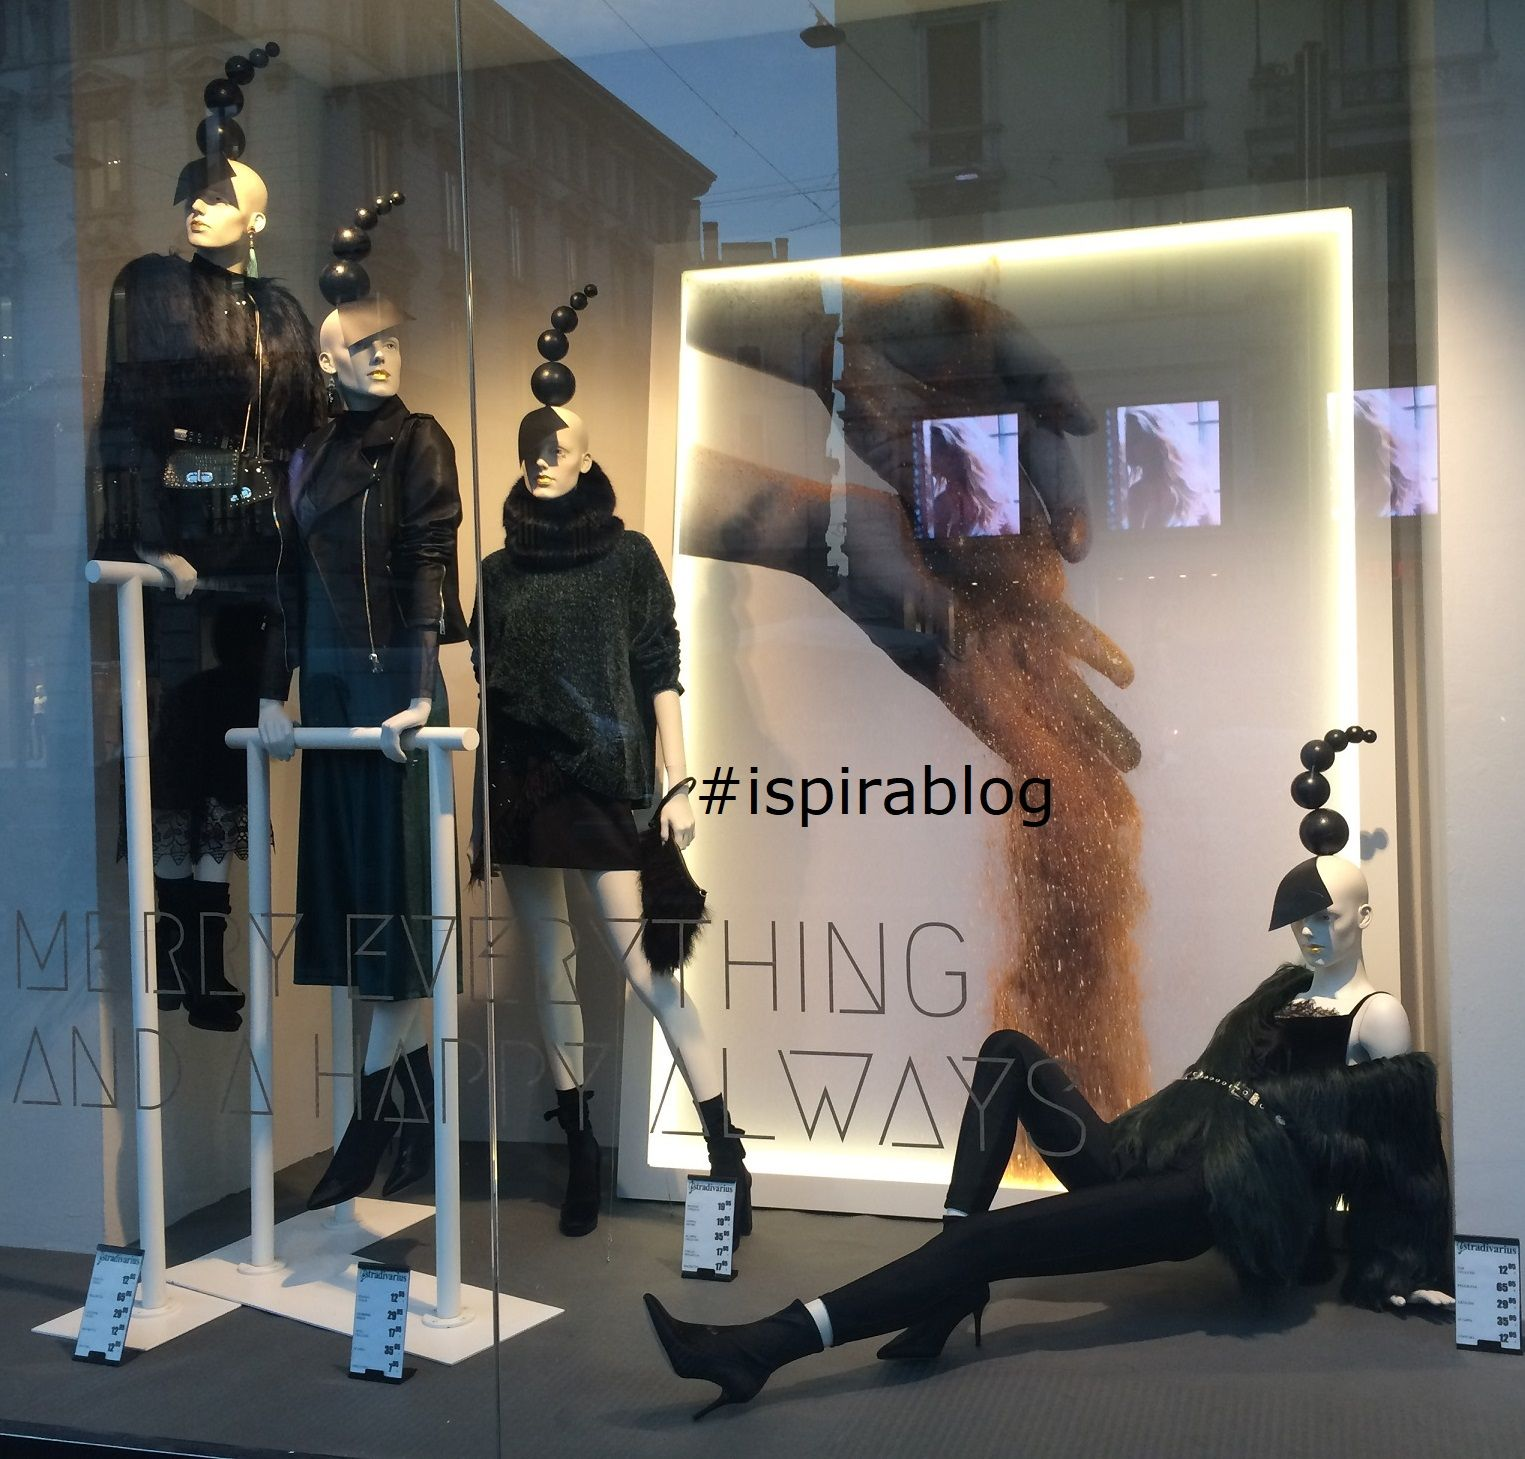 Stradivarius Milan - Winter 2017/18 - Womenswear Collection - black outfits with heeled boots and small handbags 2018-01-02 #ispirablog #stradivarius